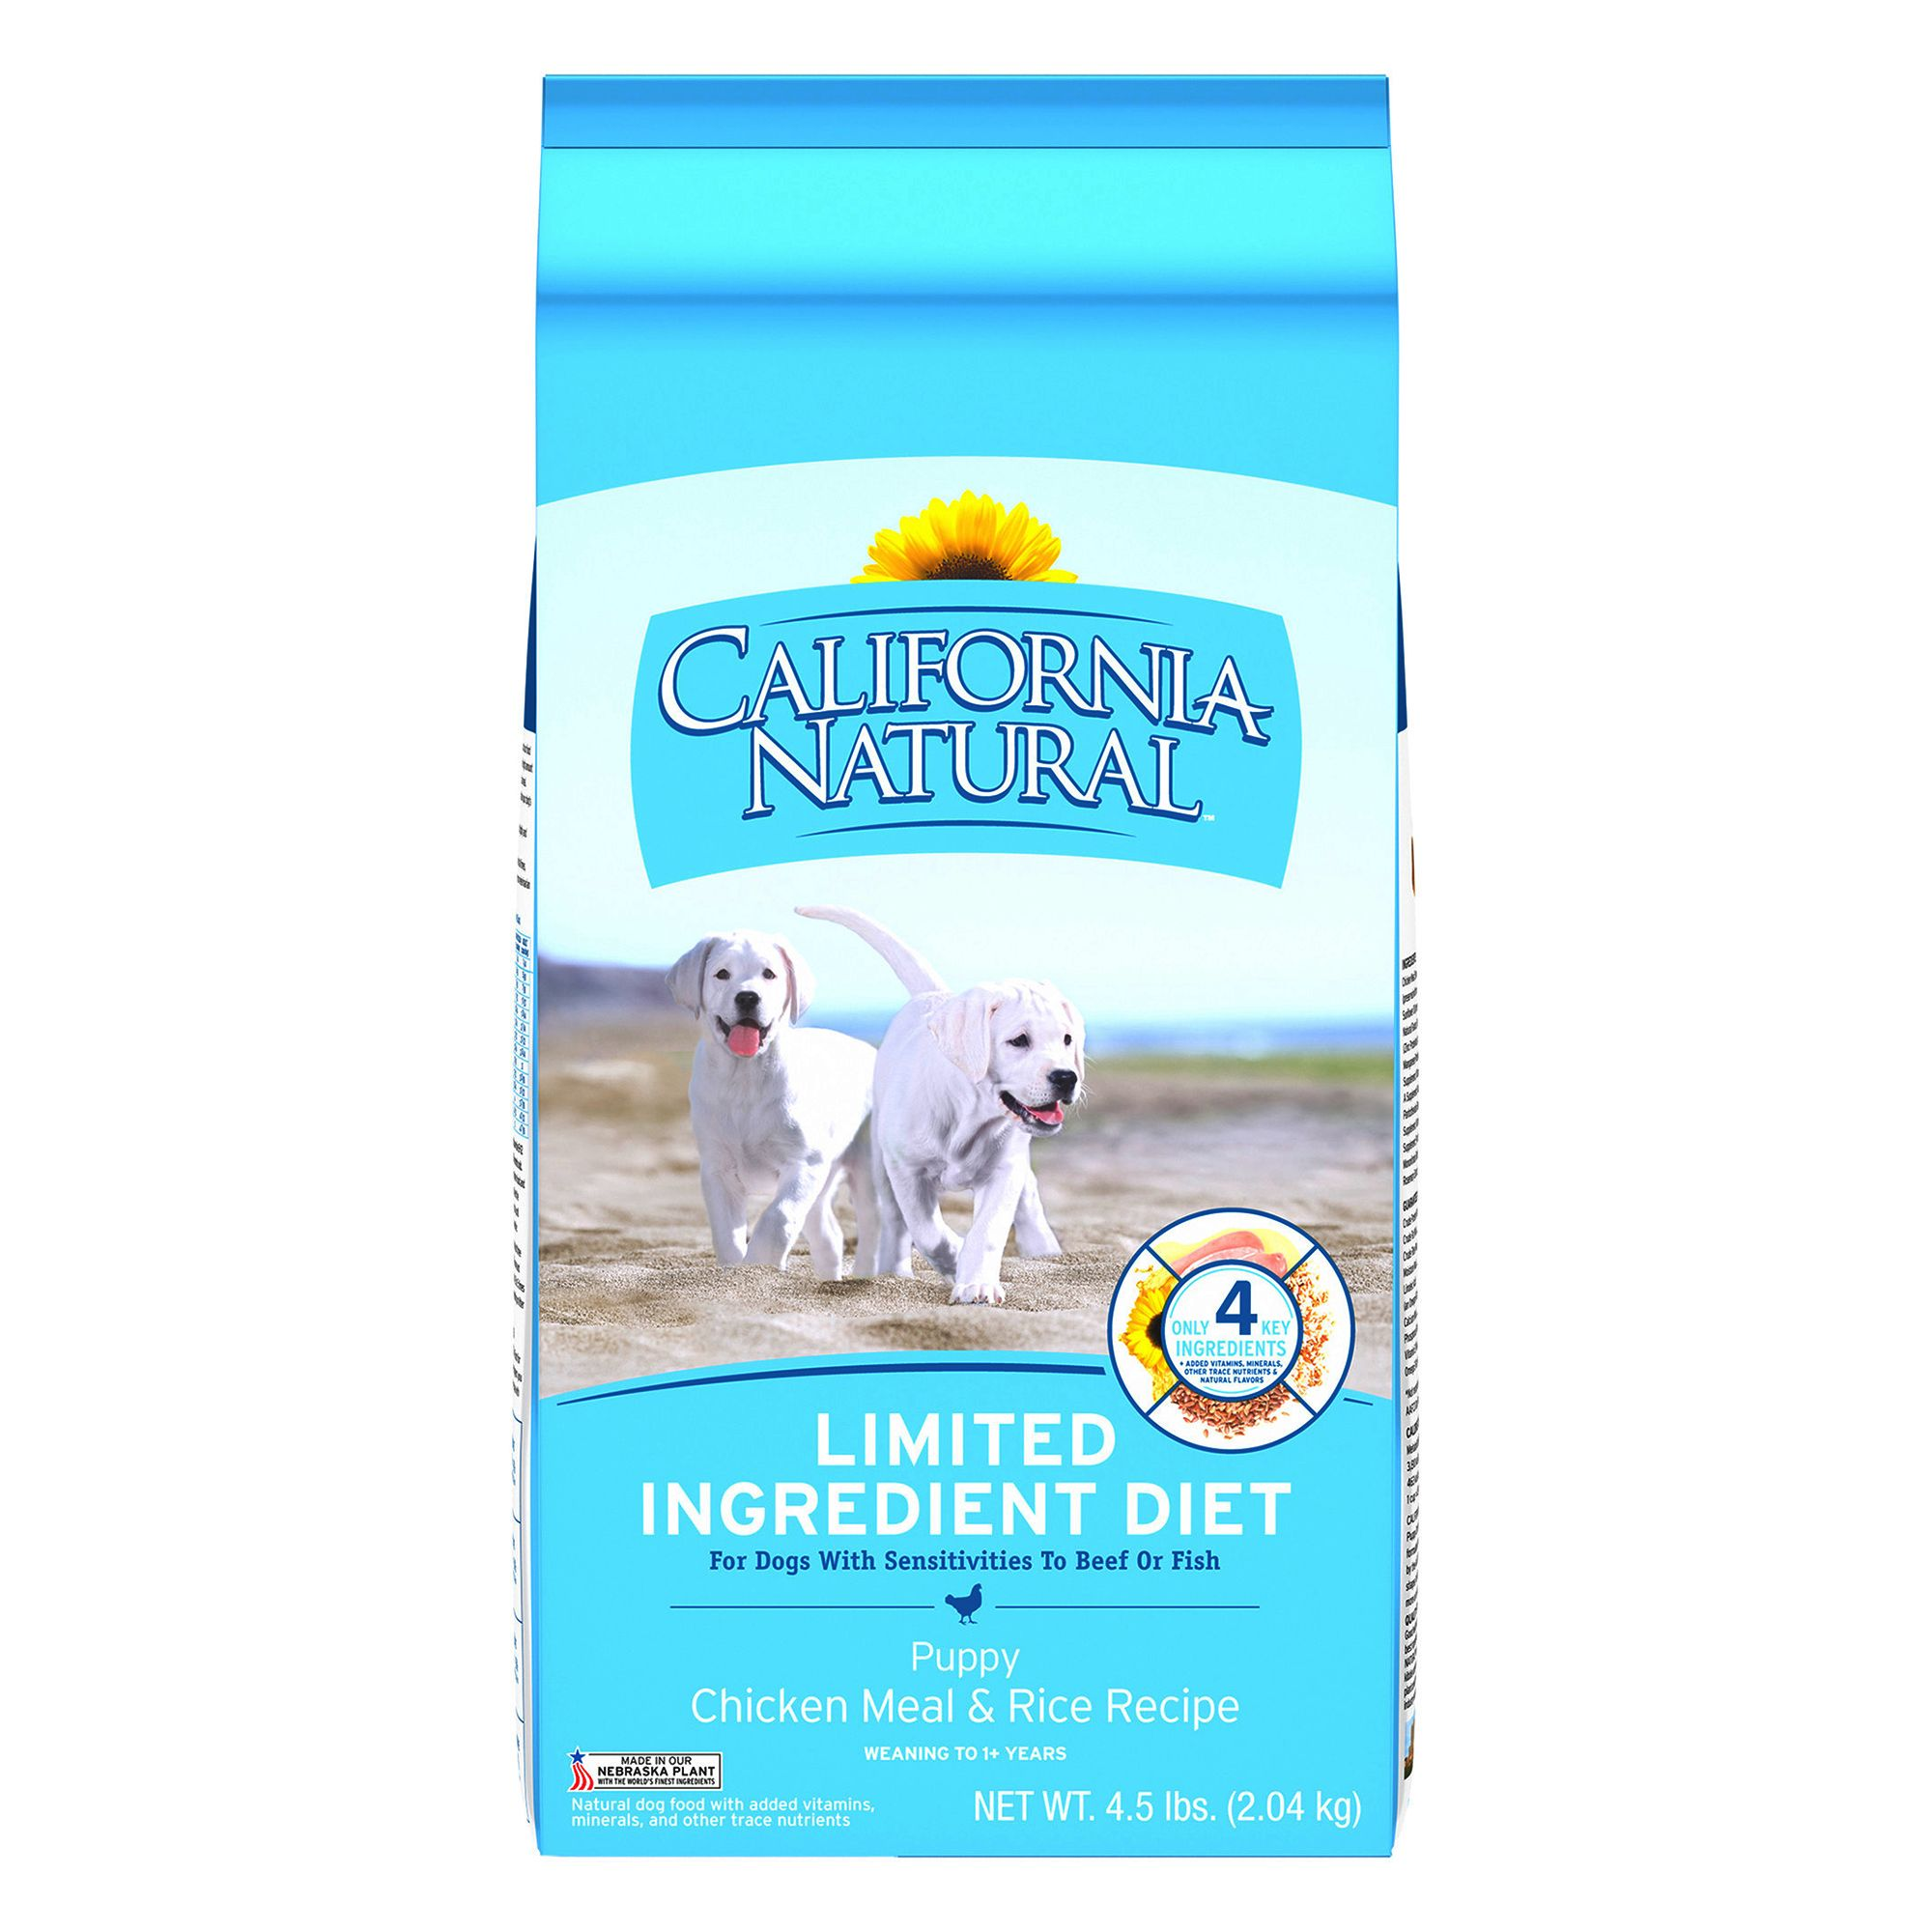 California Natural Limited Ingredient Diet Puppy Food Natural Chicken Meal And Rice Size 4.5 Lb